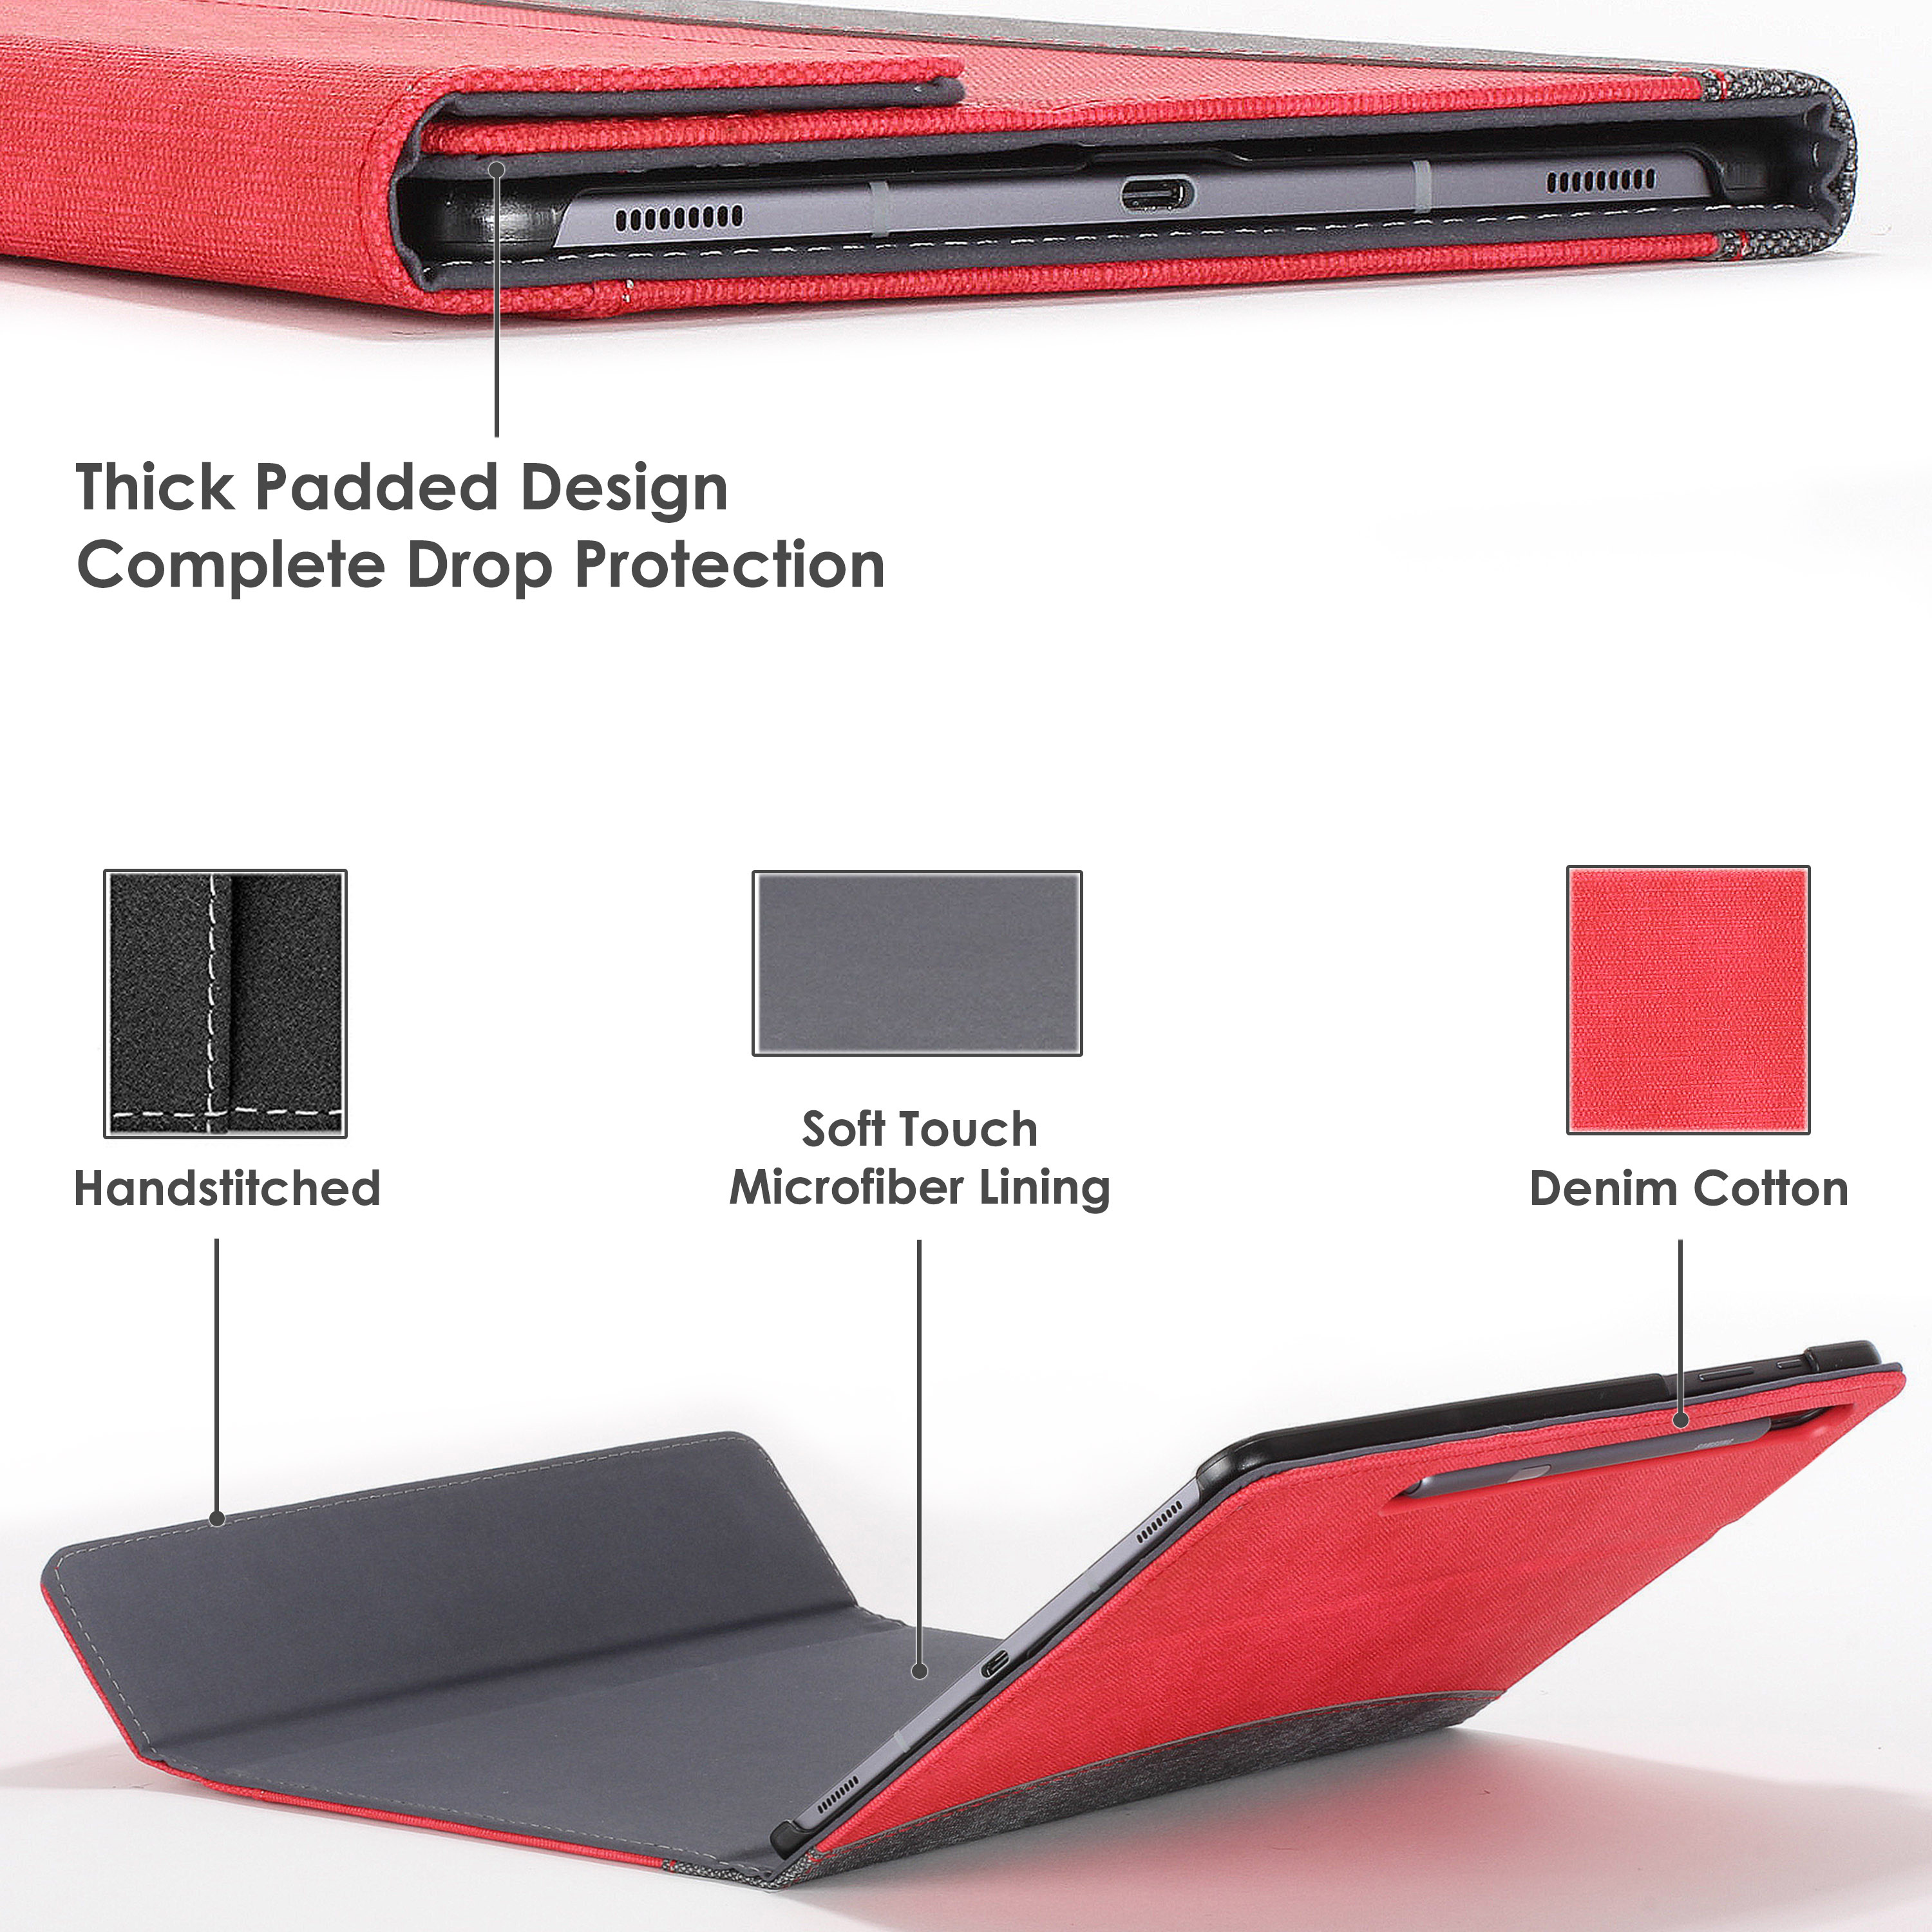 Samsung-Galaxy-Tab-S6-10-5-Case-Cover-Stand-with-Document-Pocket-Stylus thumbnail 22